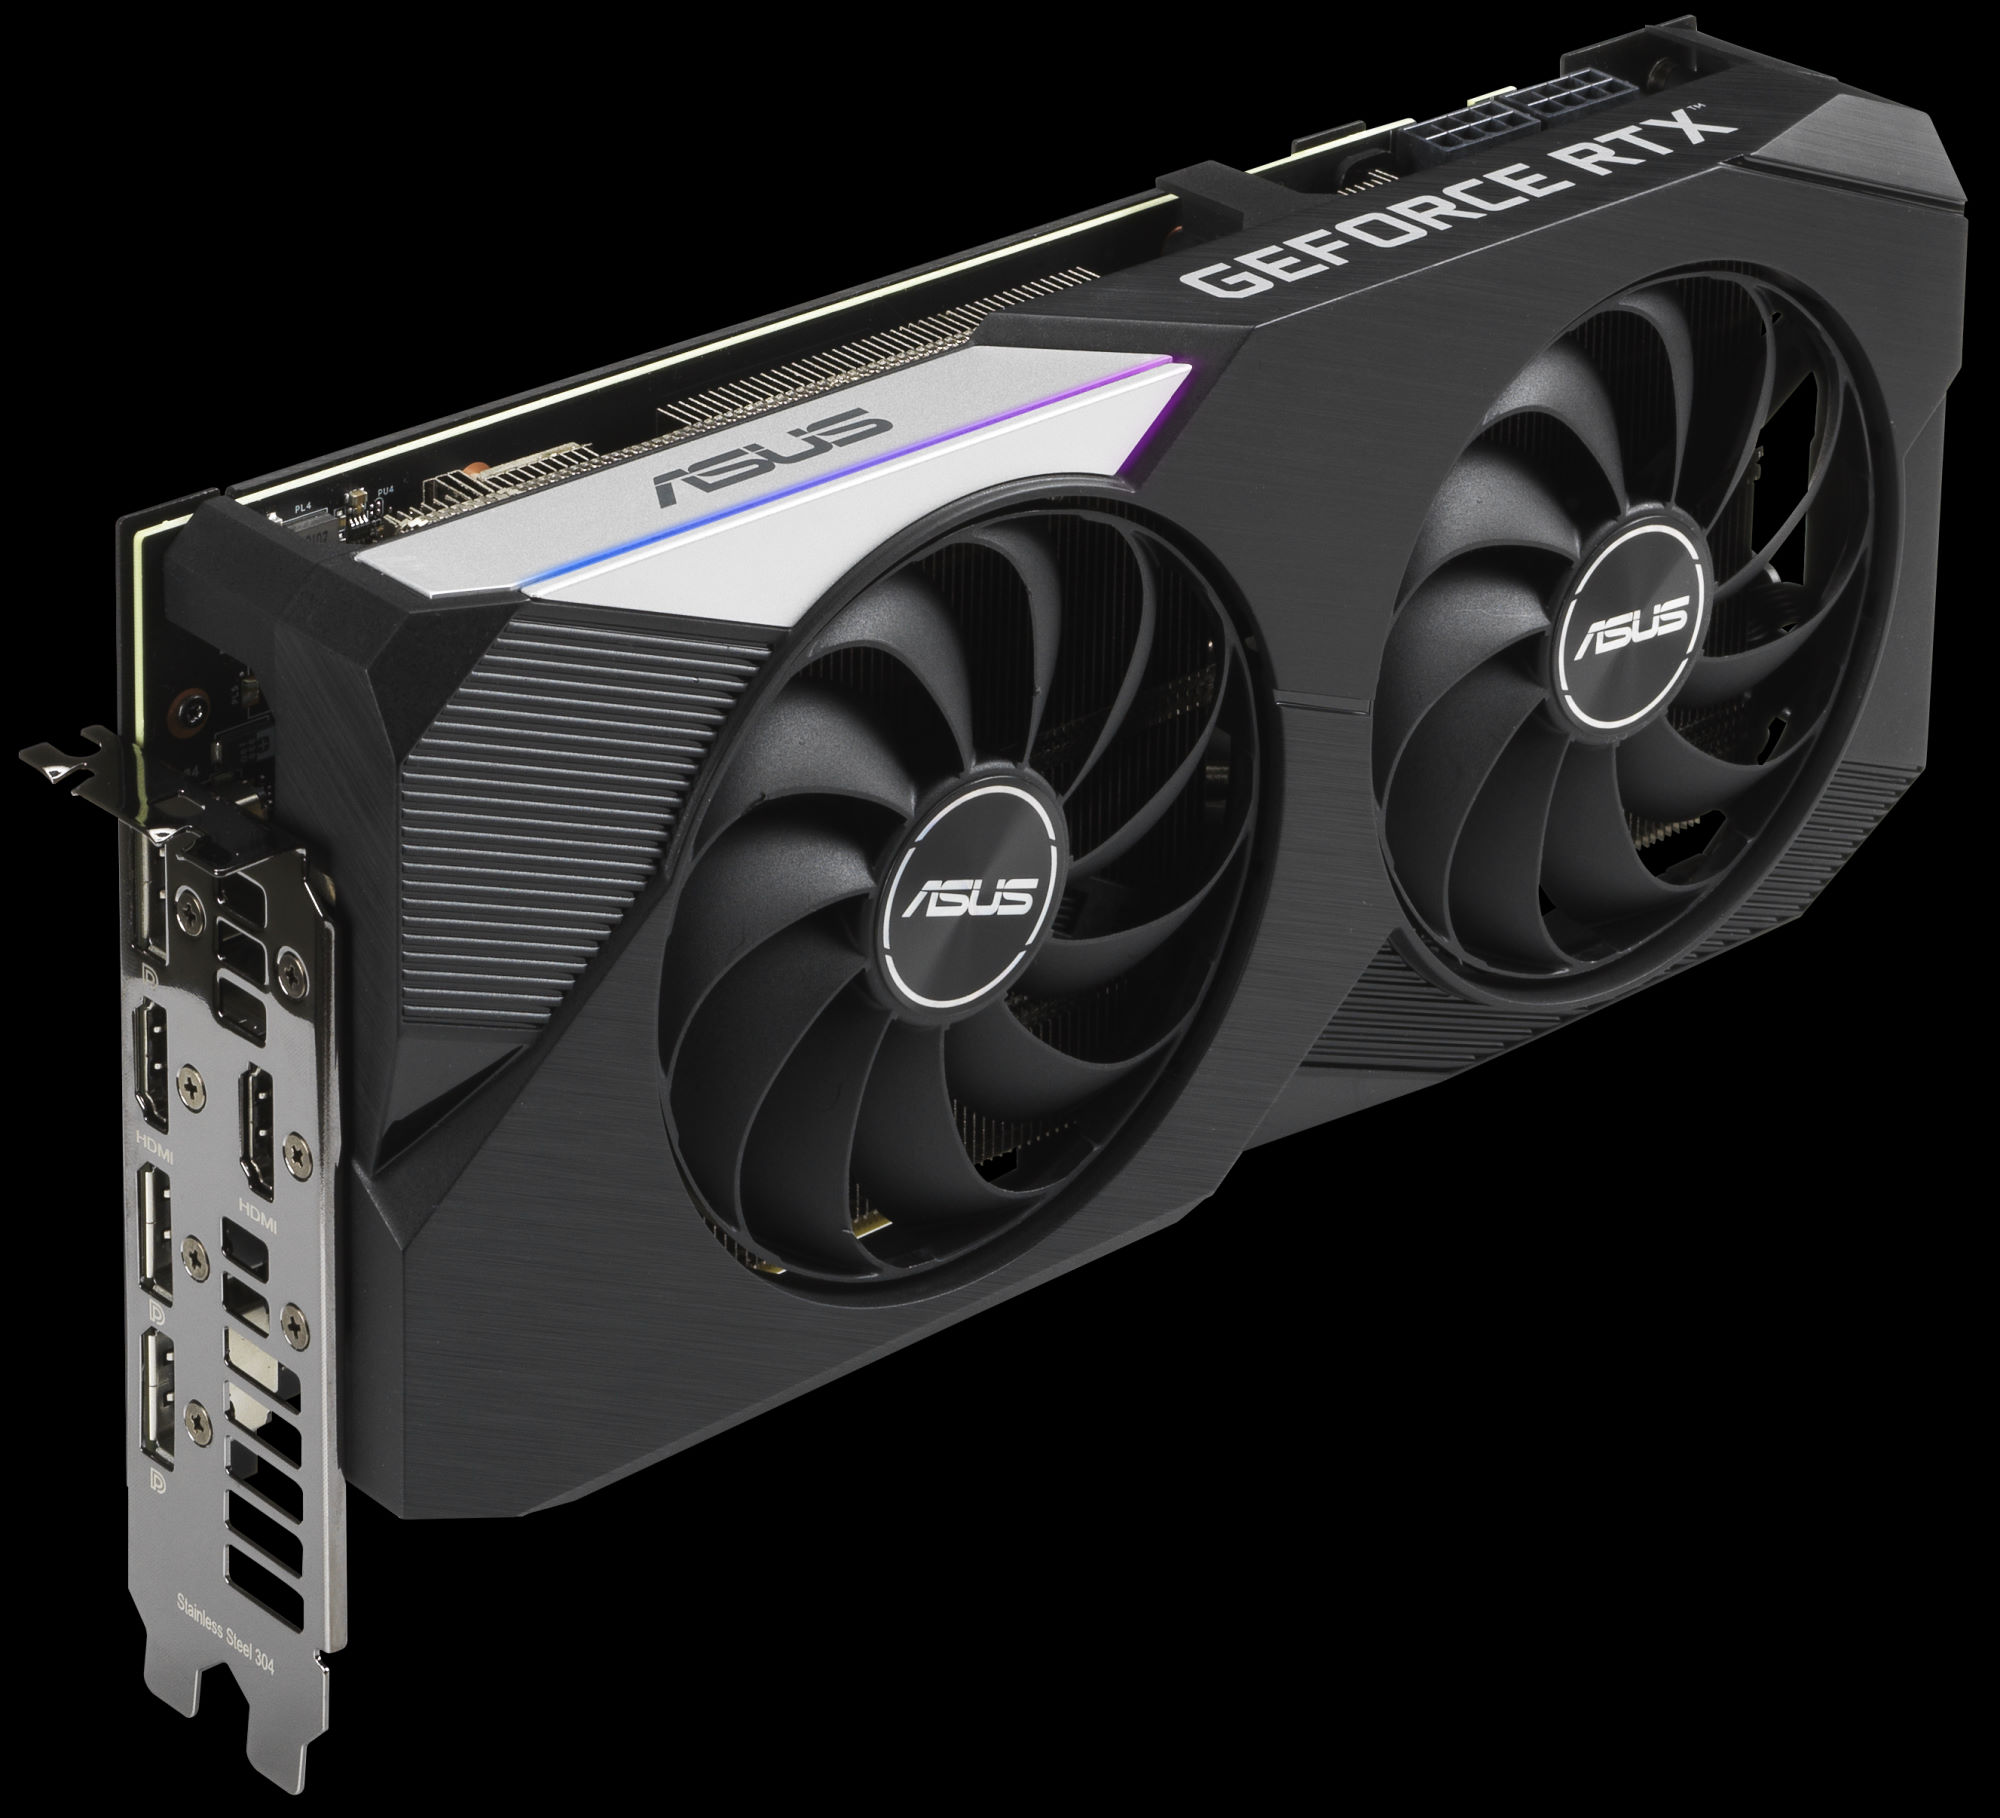 1599015504192 - Asus Nvidia Geforce RTX 3090 & 3080 Press Release